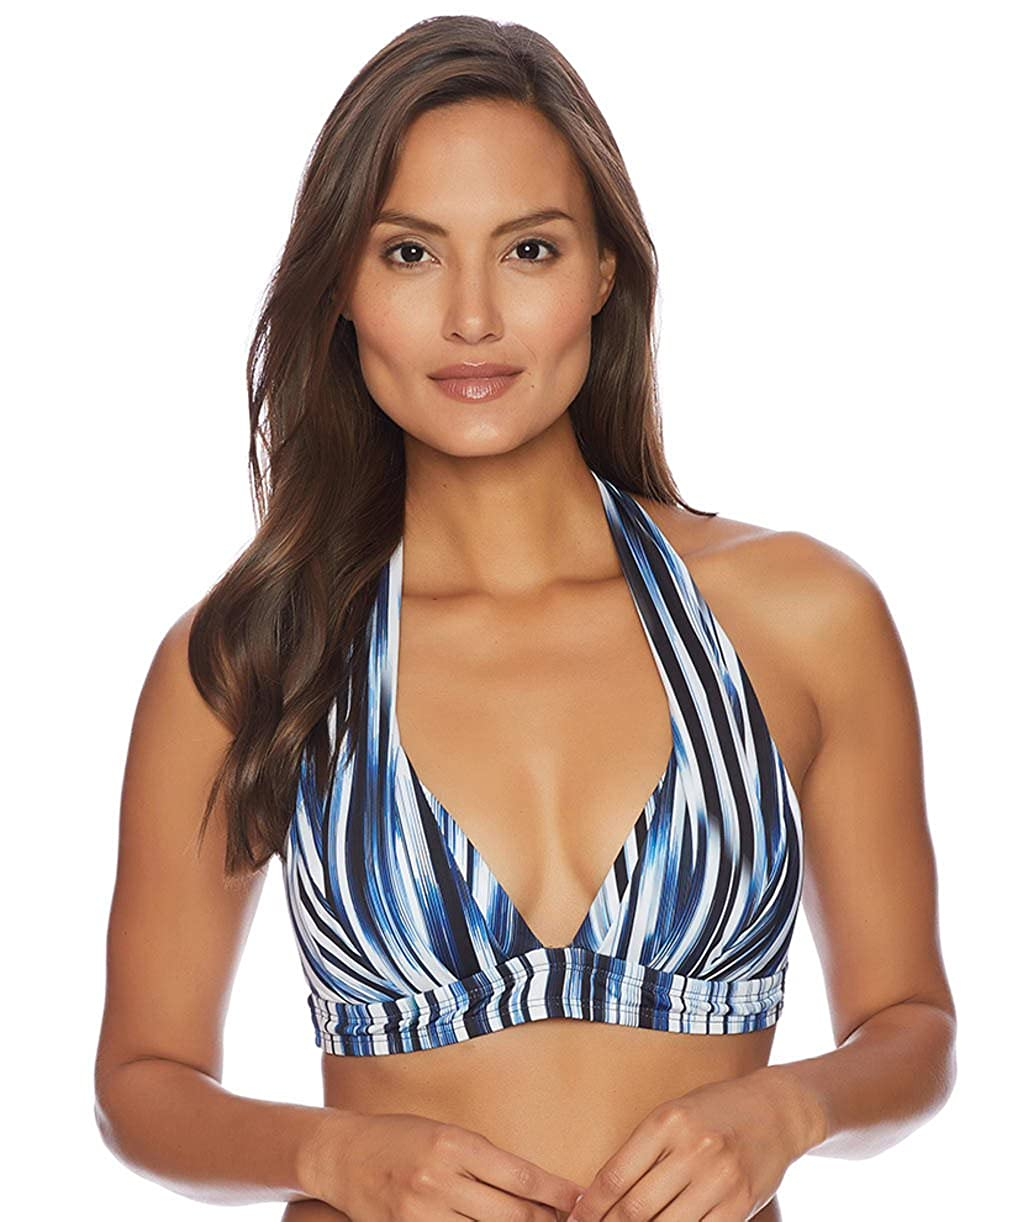 ba47a82f63743 Halter style bikini top with thick straps for support. Blue horizon striped  style print in blue, black and white. Molded cups for extra support